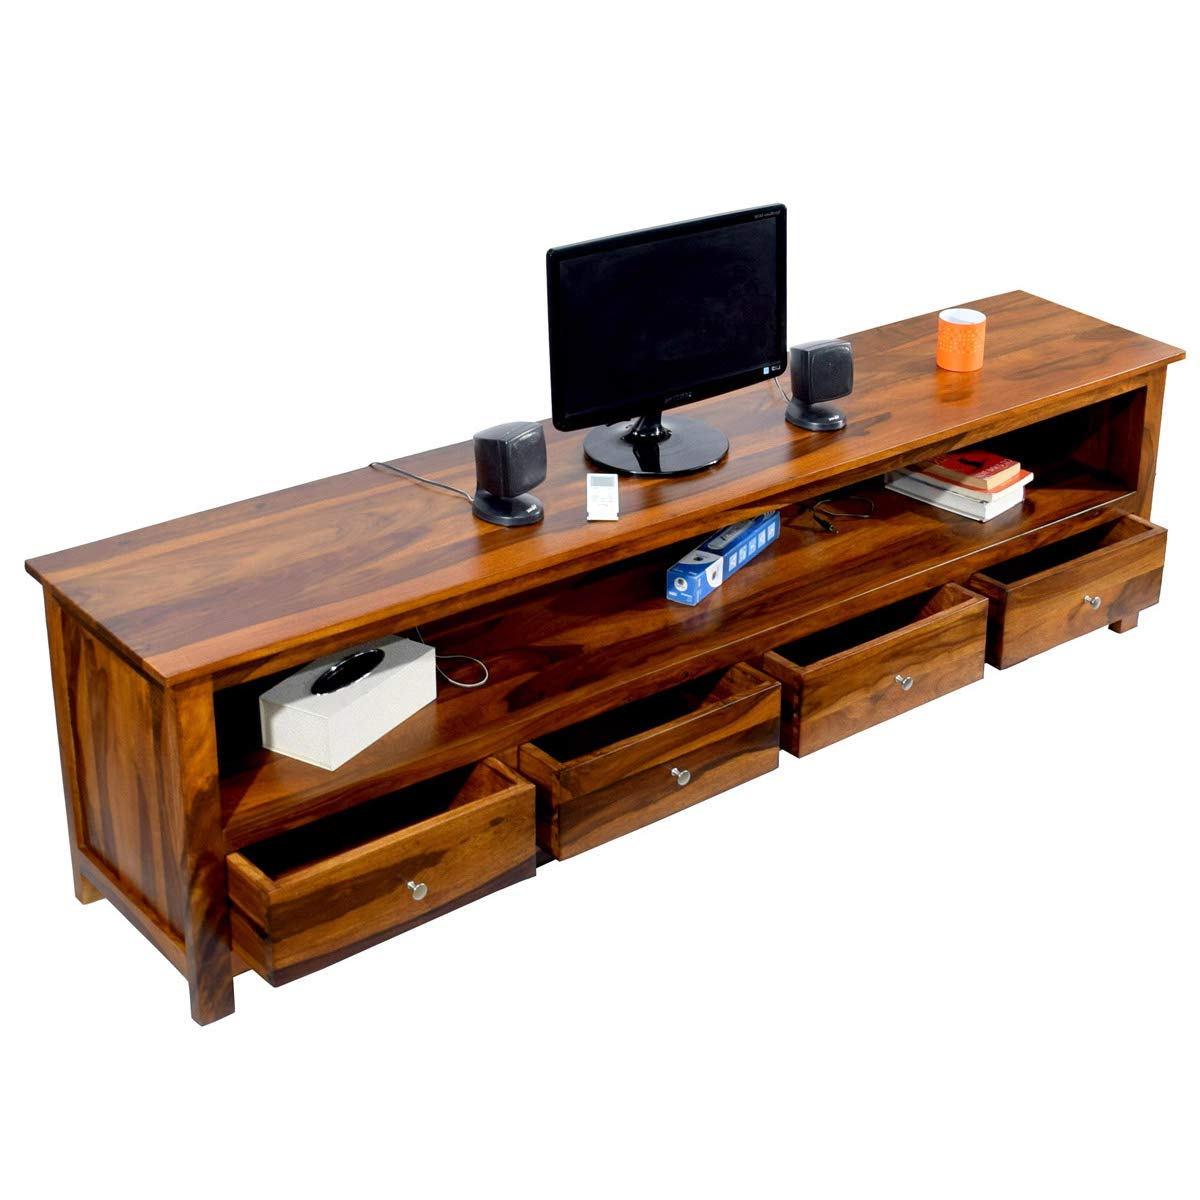 2017 Daintree Tv Stands With Daintree Sheesham Wood 1.96 Meter Dolly 4 Draw Tv Unit Cabinet (Gallery 12 of 20)